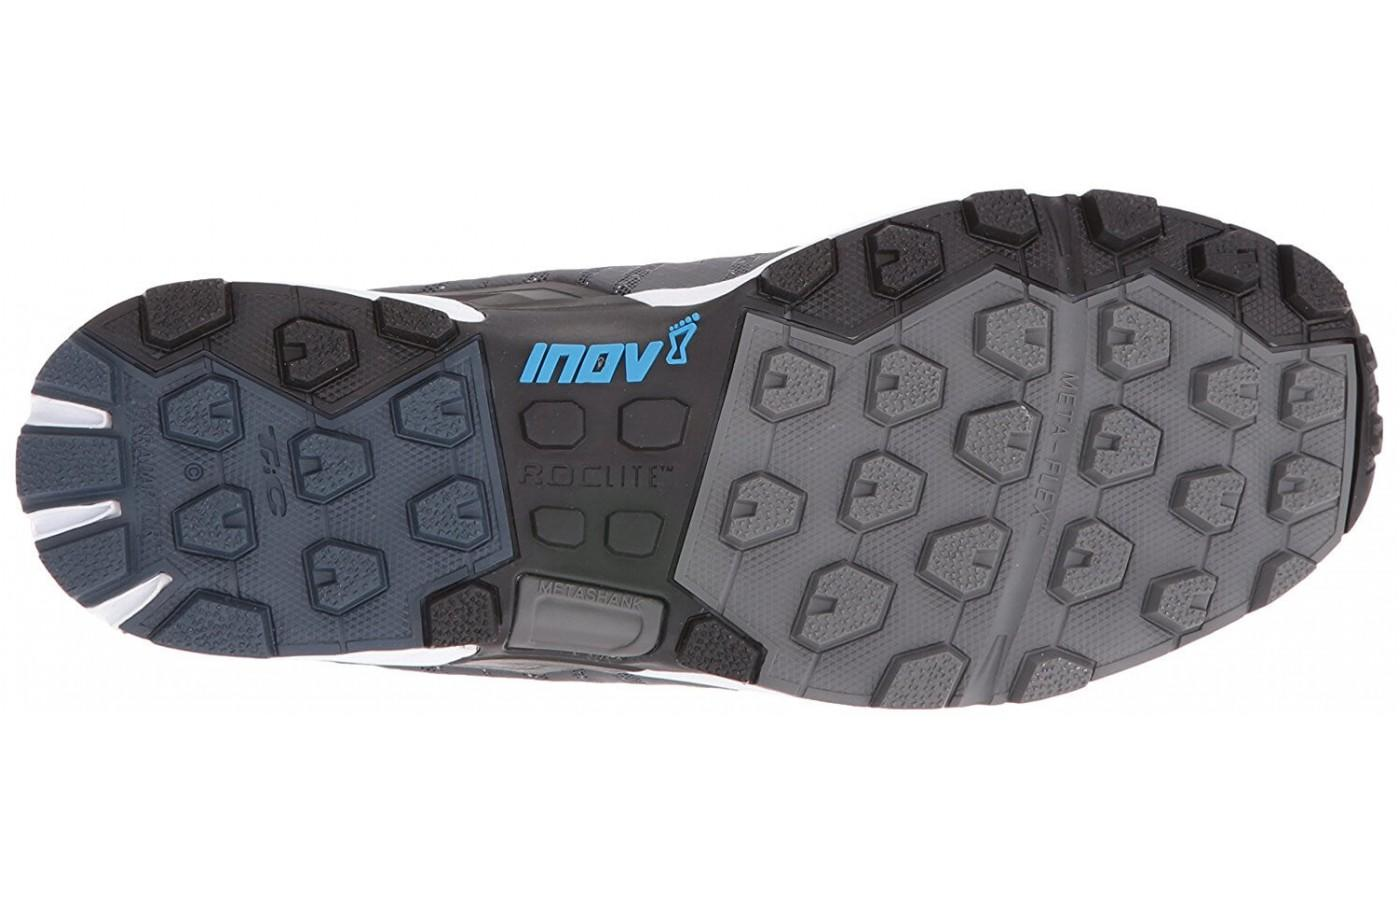 A view of the bottom outsole of the Inov-8 Roclite 290.